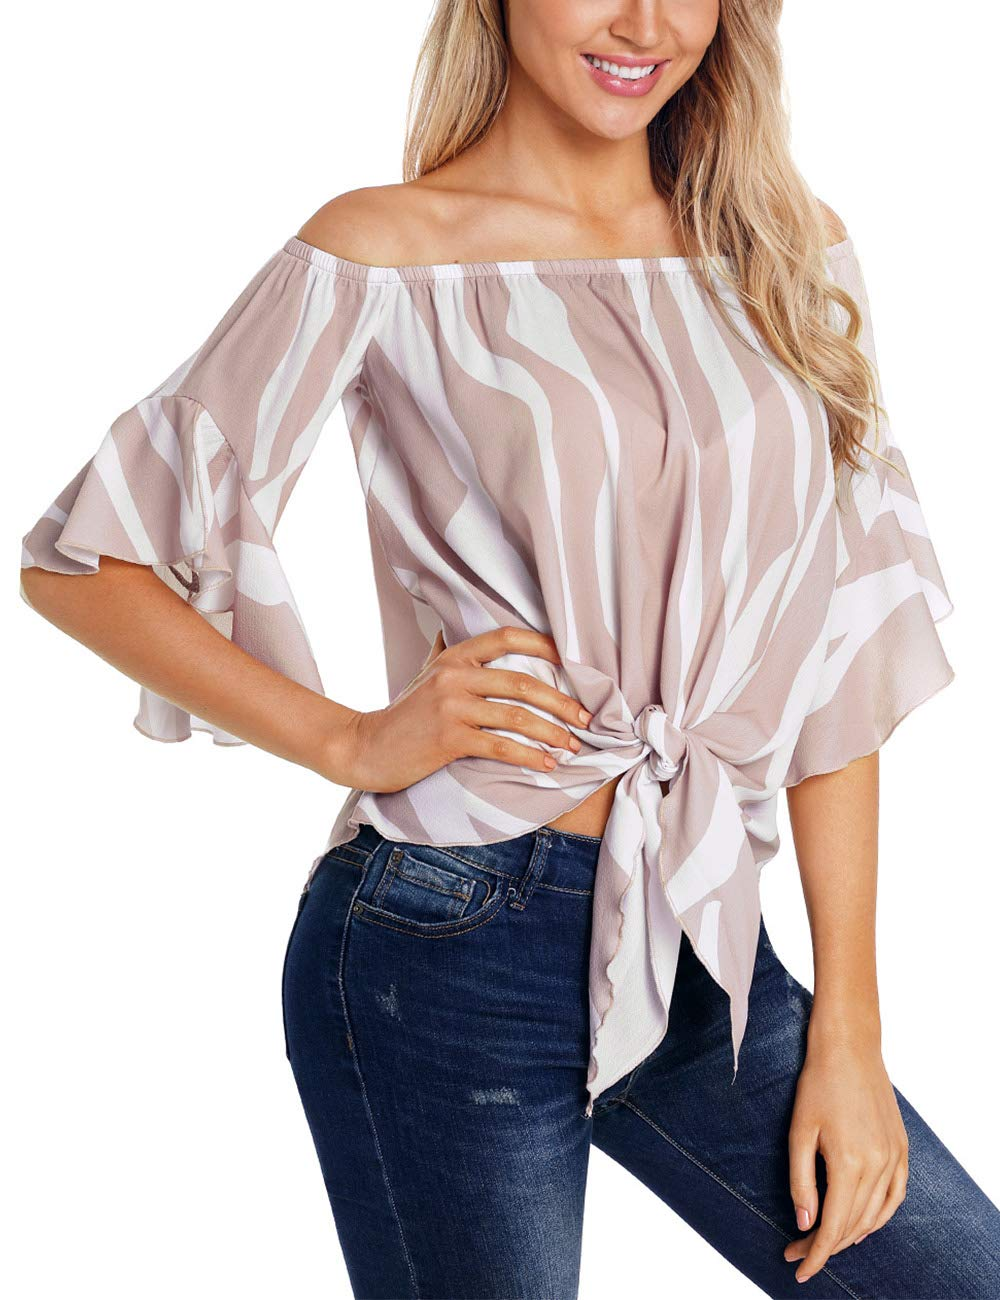 RSM &CHENG Women's Striped Off Shoulder Bell Sleeve Shirt Tie Knot Casual Blouses Tops(Stripe Pink,L